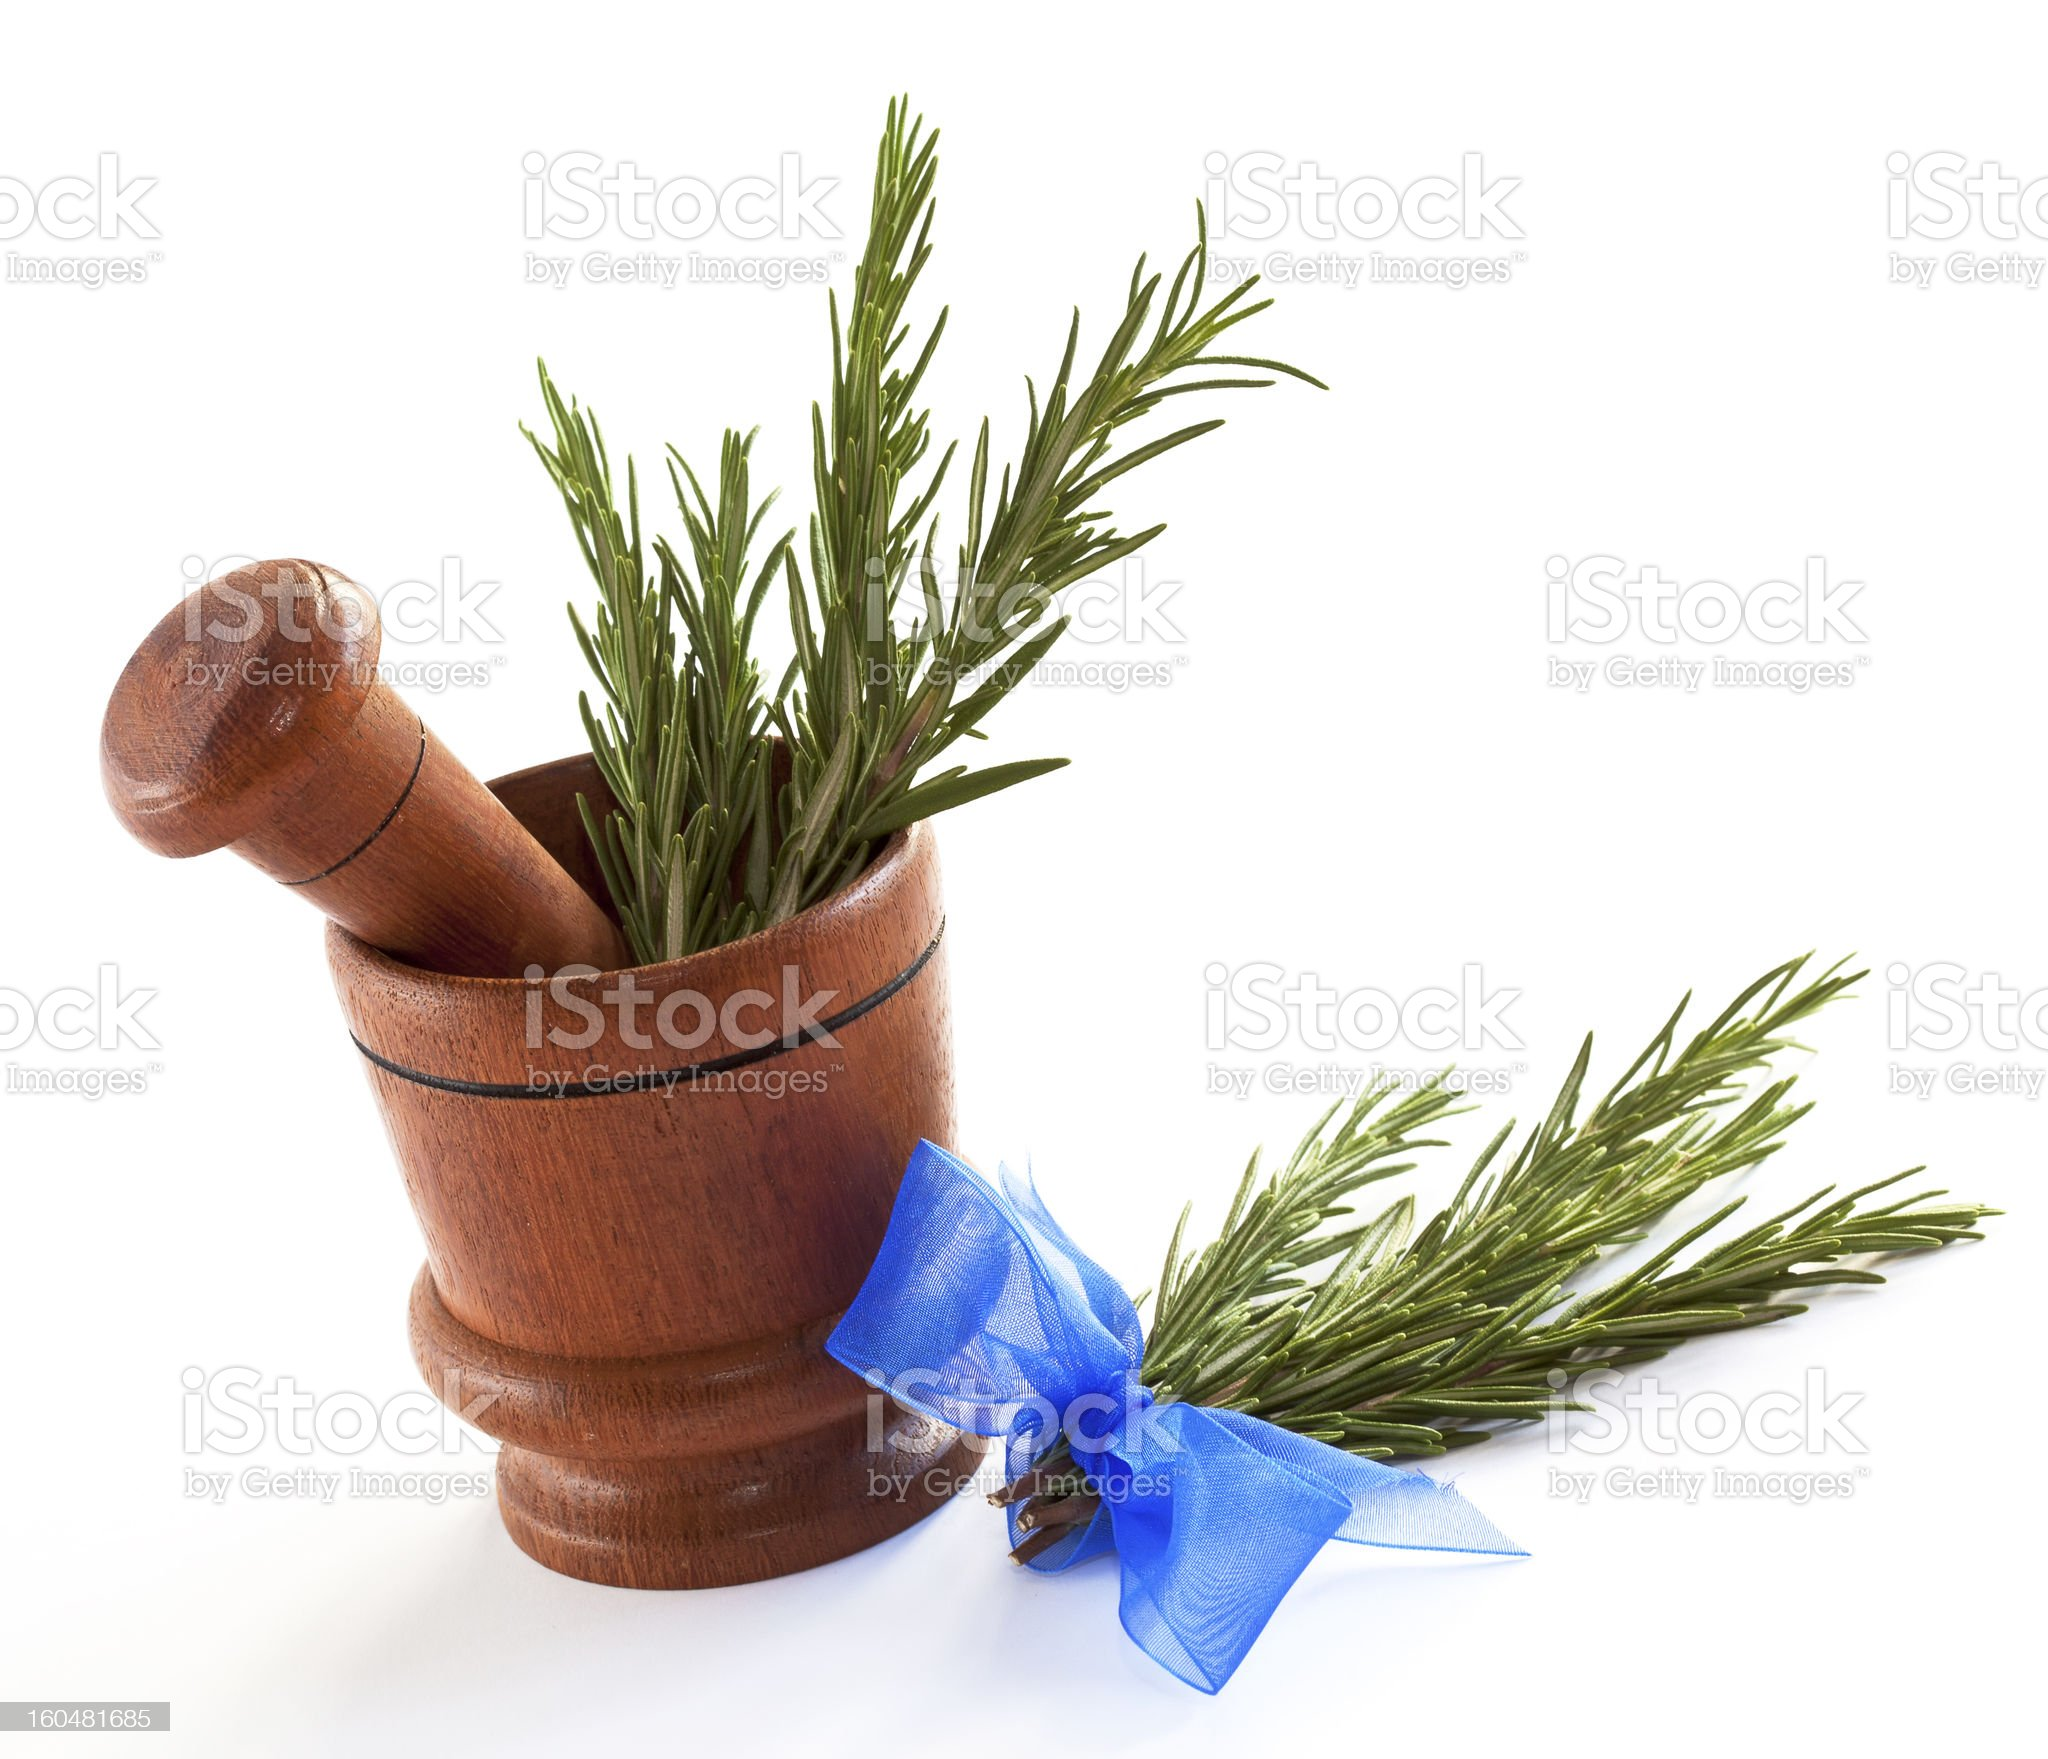 Fresh rosemary herb in wooden mortar with pestle royalty-free stock photo